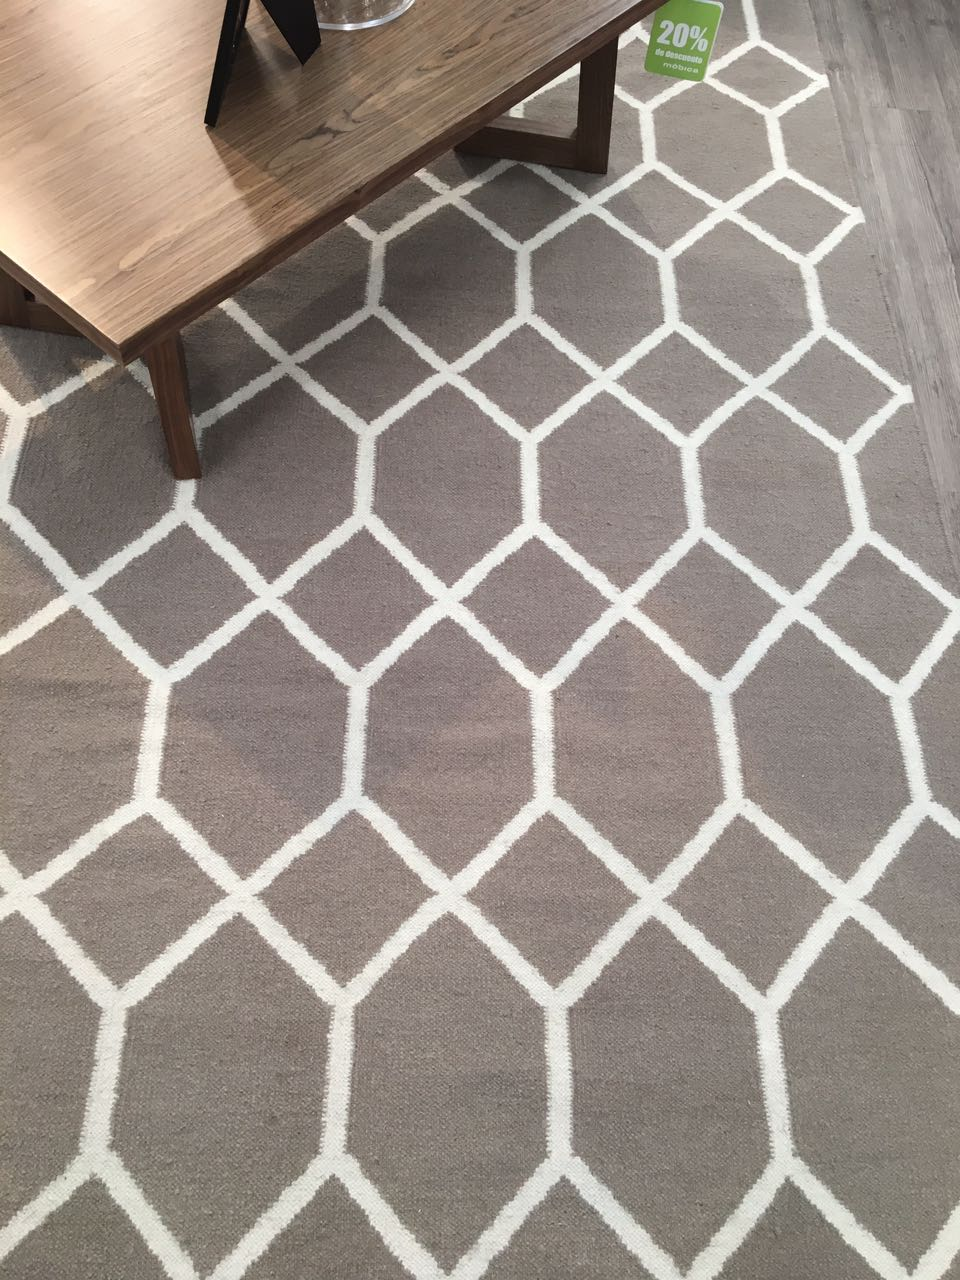 Tapete Marruecos Hexagono Grey